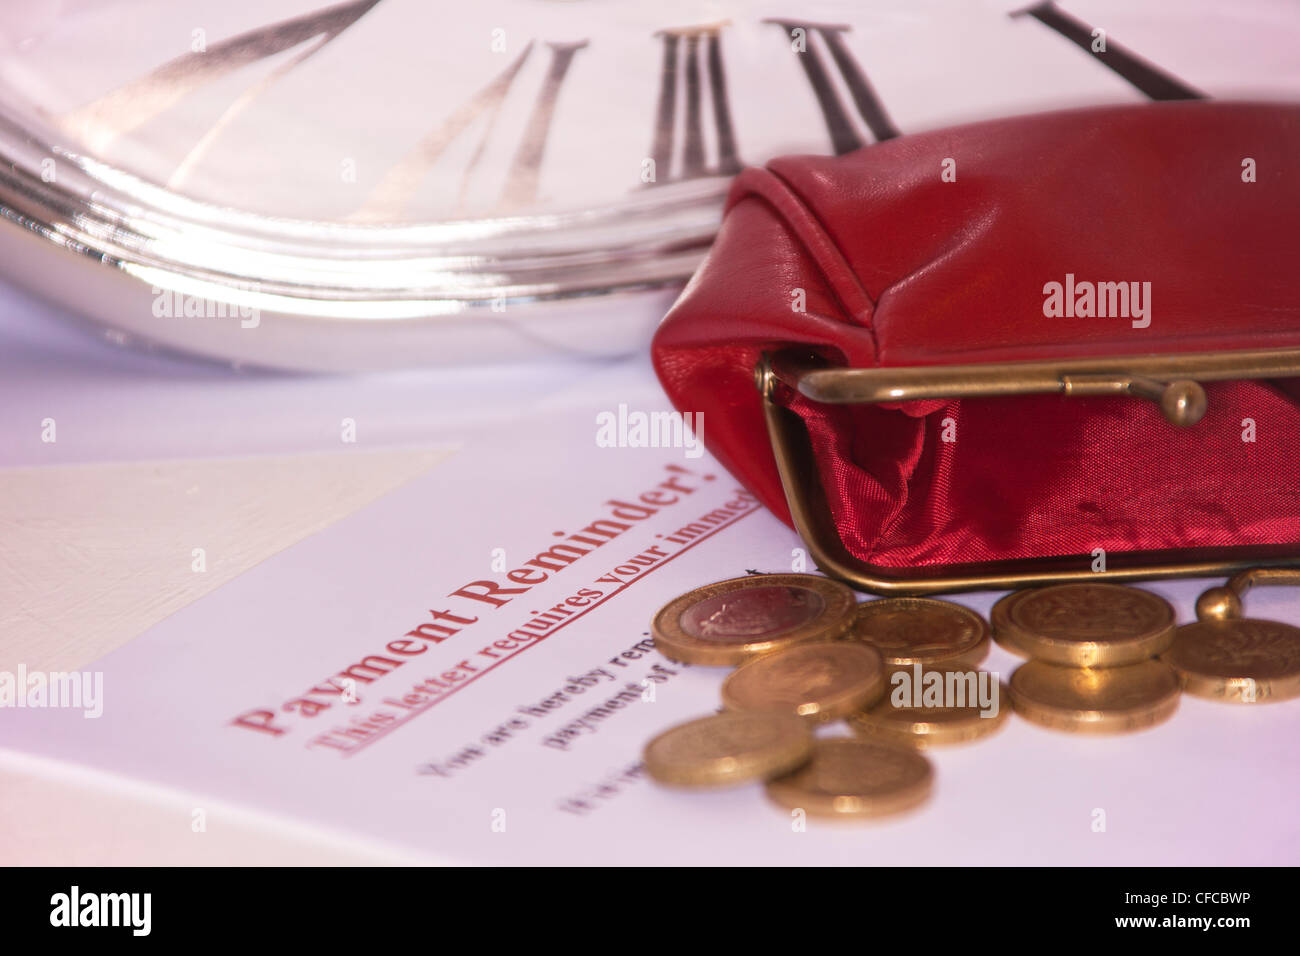 Financial concept, debt, payment, reminder, poor, empty purse. - Stock Image